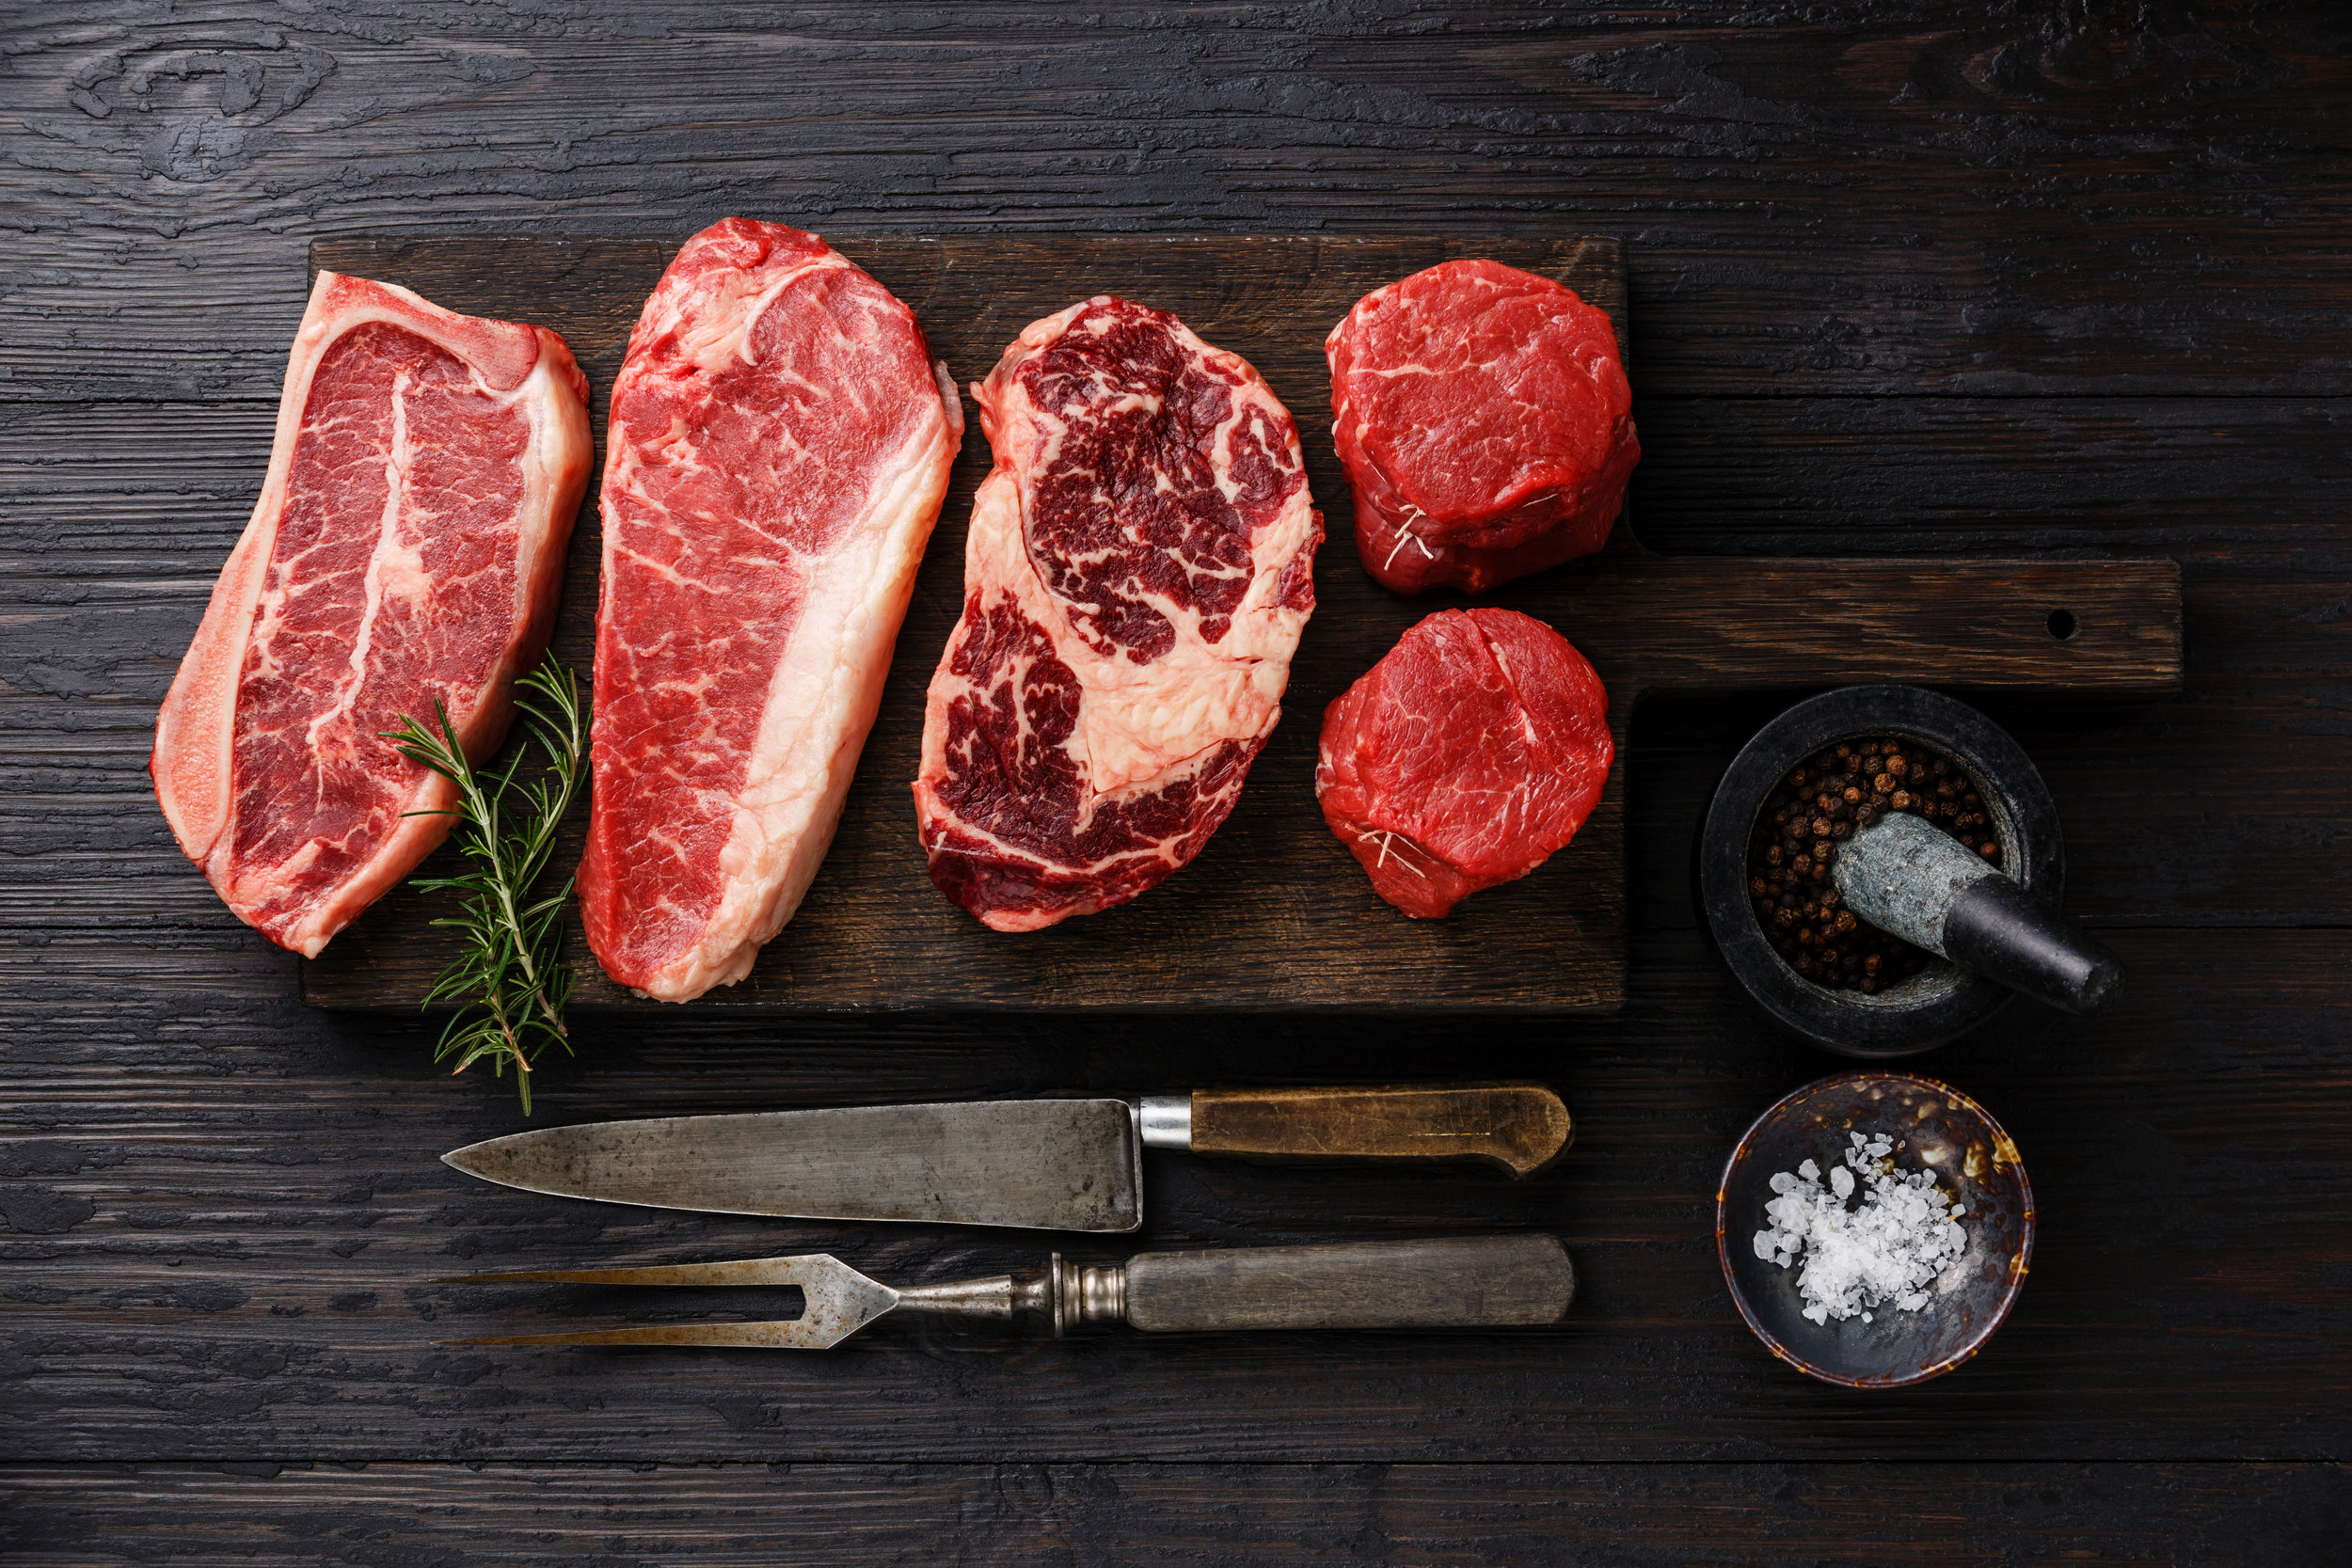 The perfect box for steak lovers!  Includes 8-9 lbs. of delicious grass-fed steaks (t-bone, rib steaks, top sirloin, & more!)  *Meat ships out every Monday, will arrive within 1-3 days frozen.